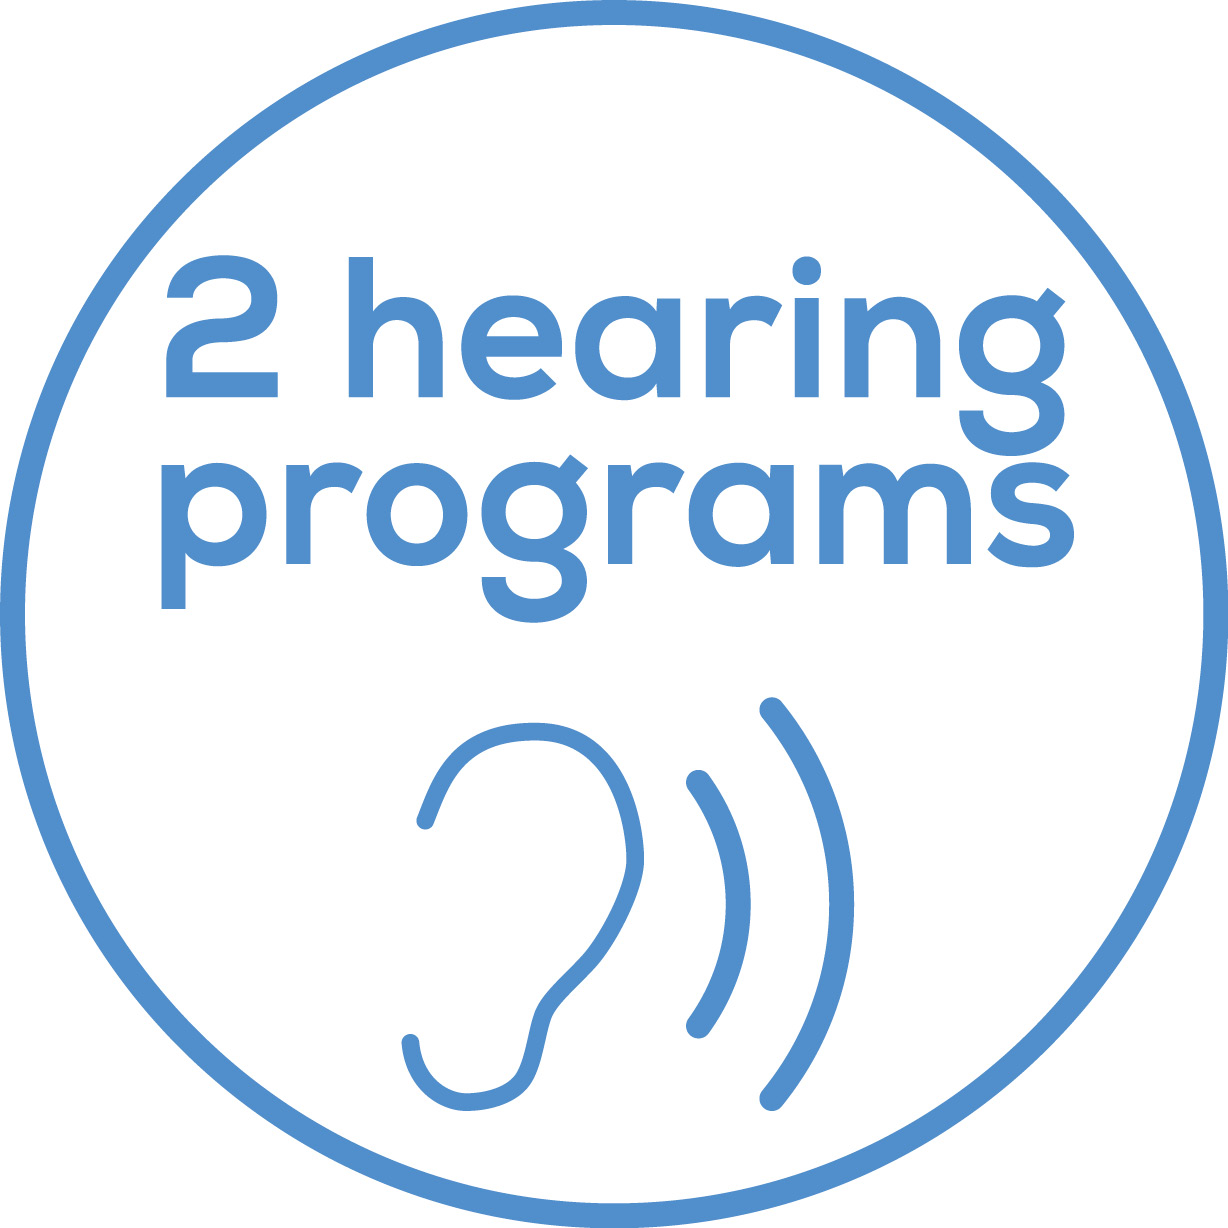 Hearing programmes Two programmes for loud and quiet environments